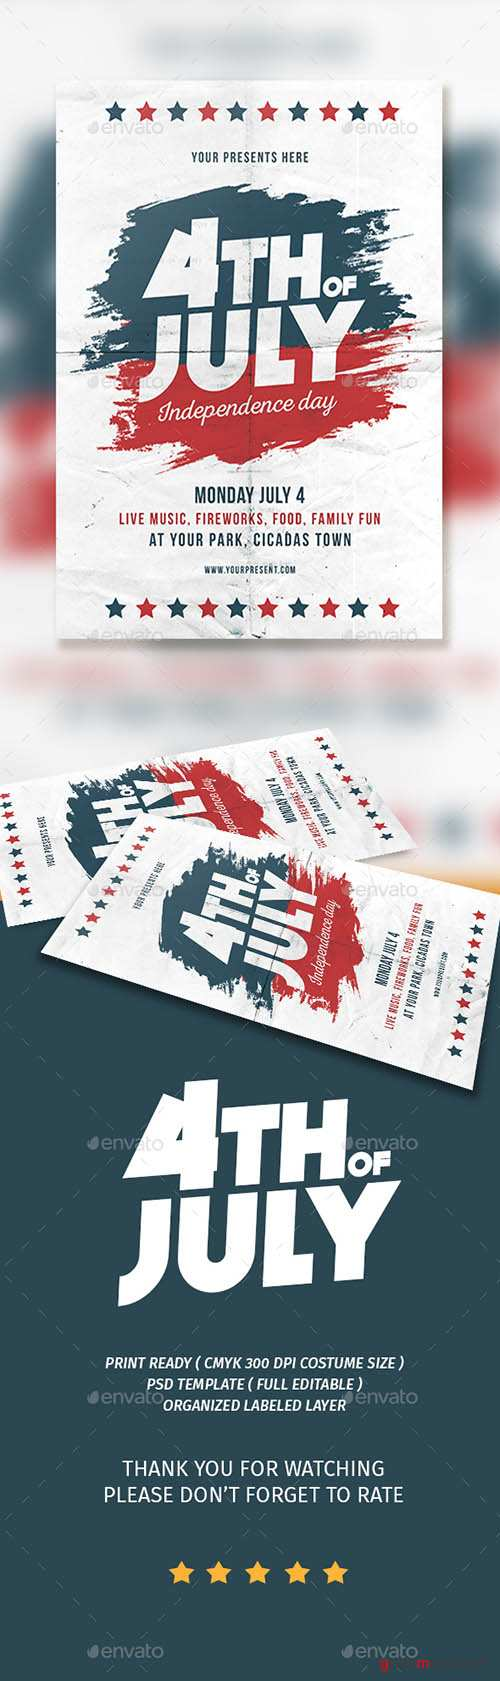 GR - 4th of JULY Flyer 16695233